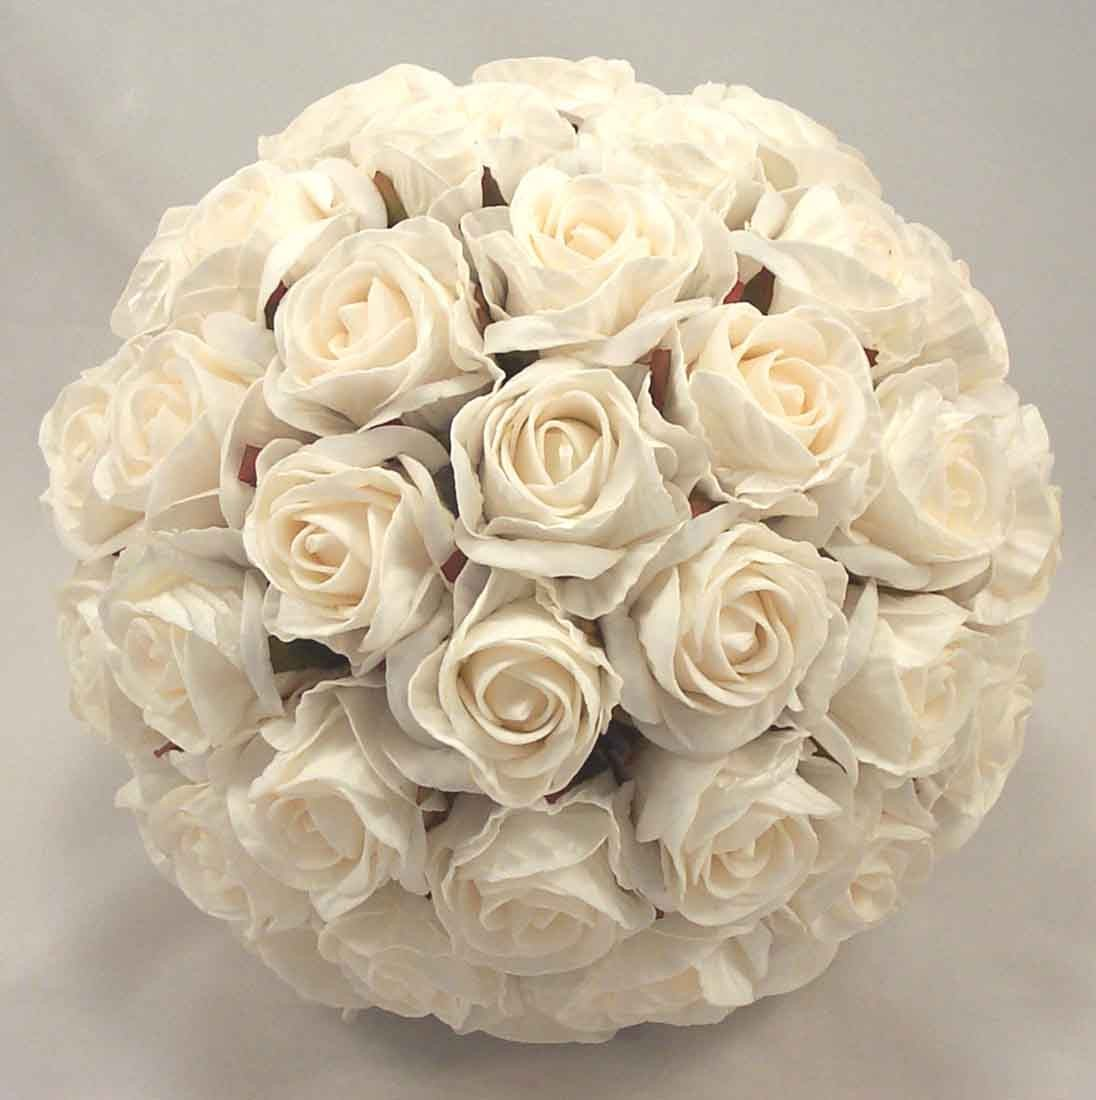 Crimped Cream Rose Bridal Bouquet